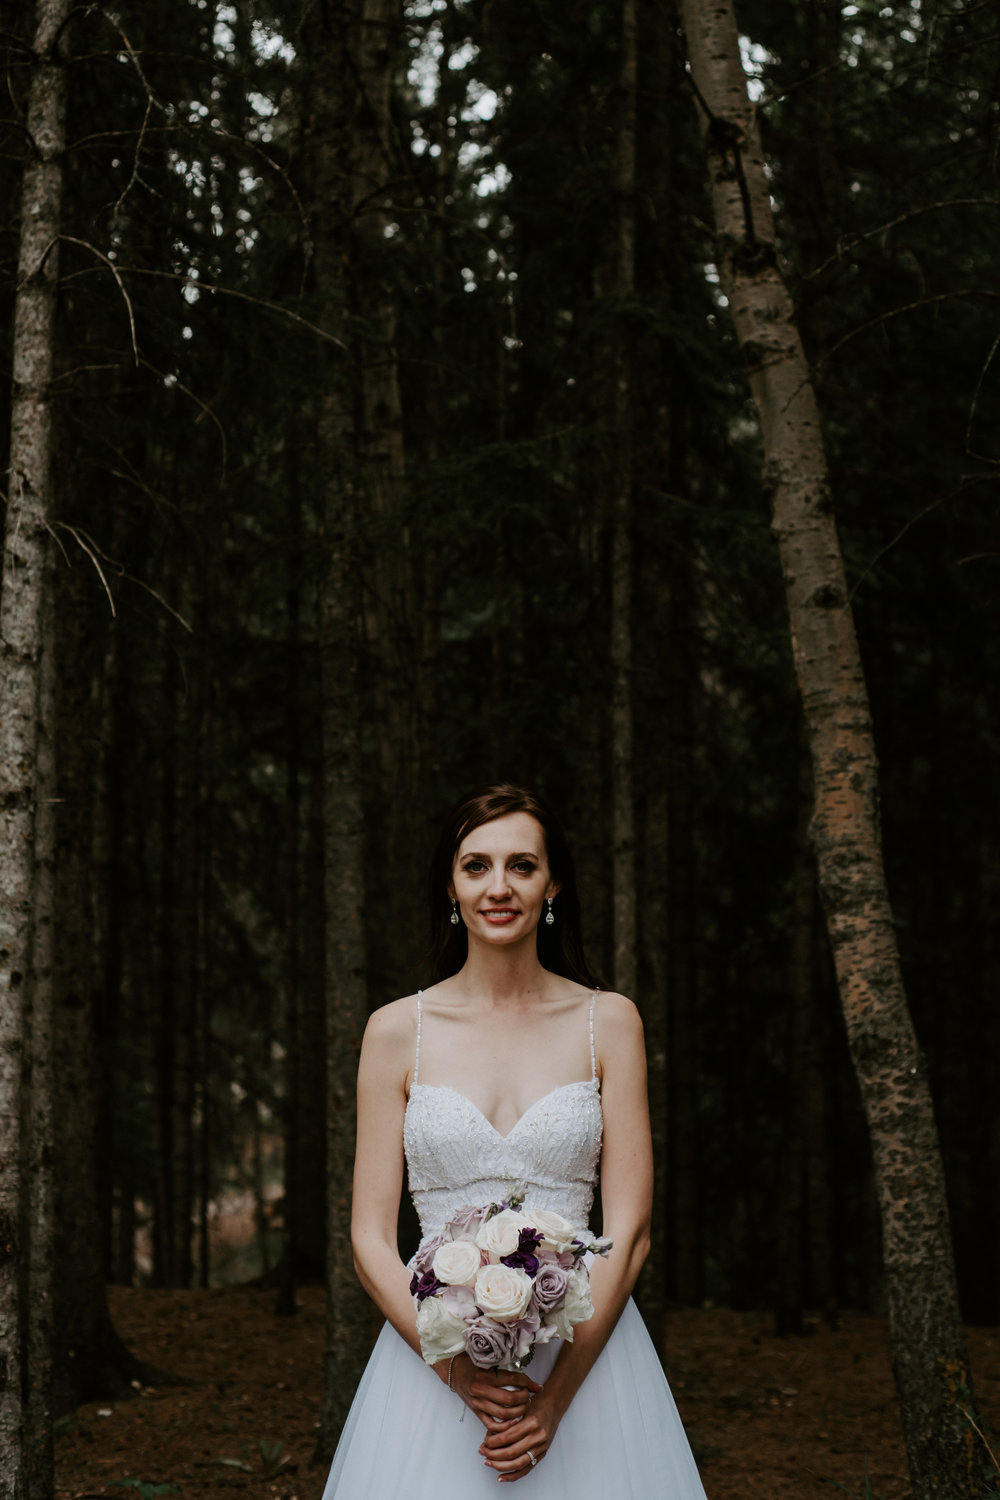 Calgary Wedding Photographer - Grey Lily Photography 50.jpg